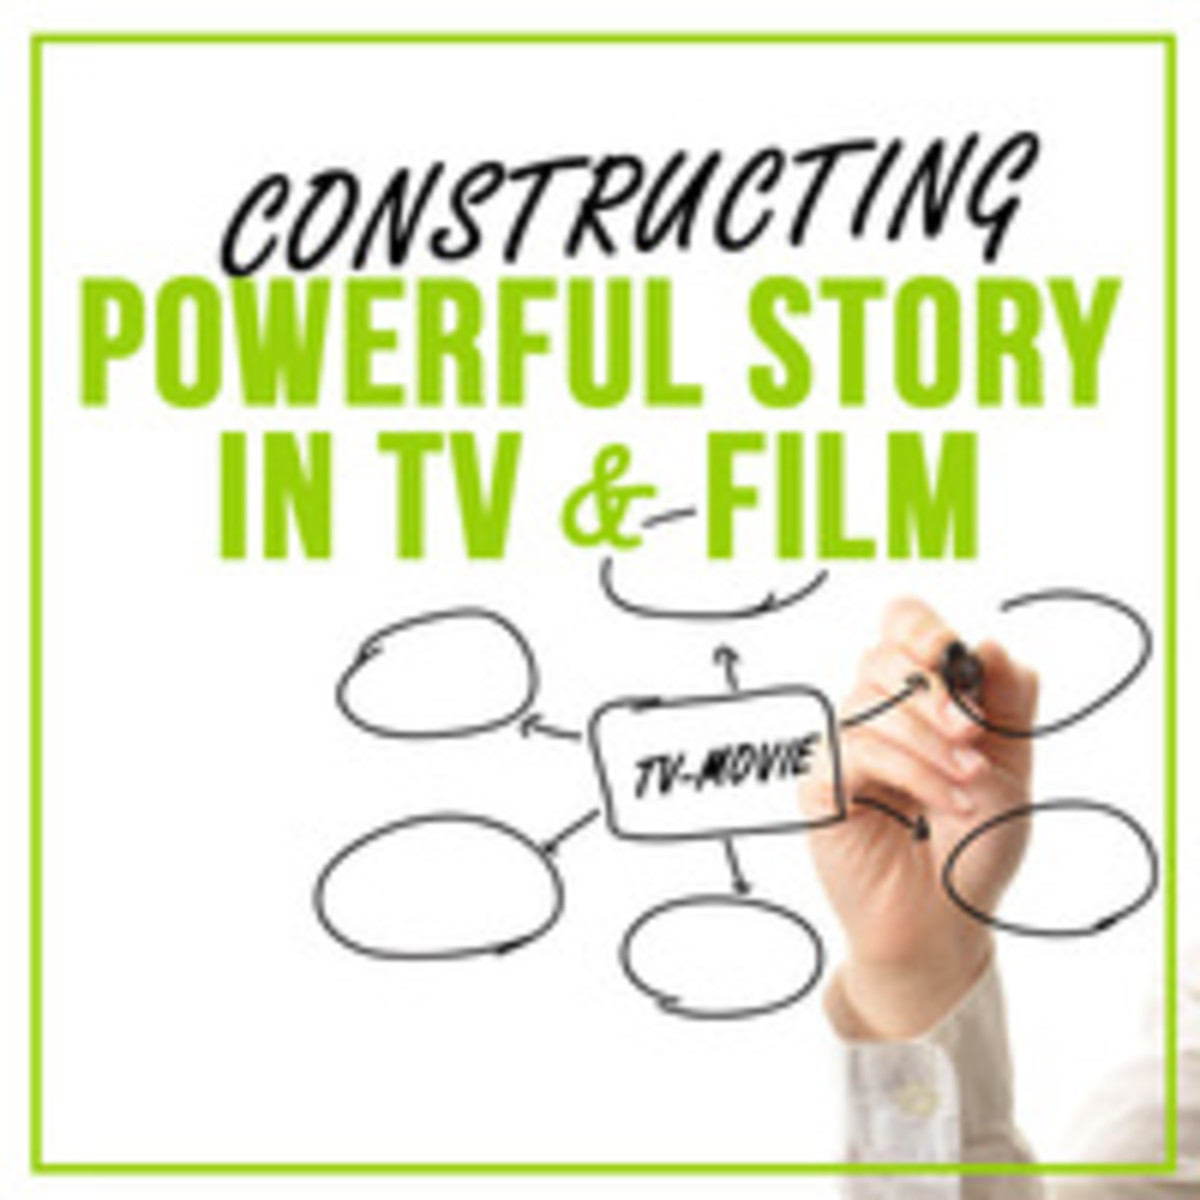 021313_constructing_powerful_story_small